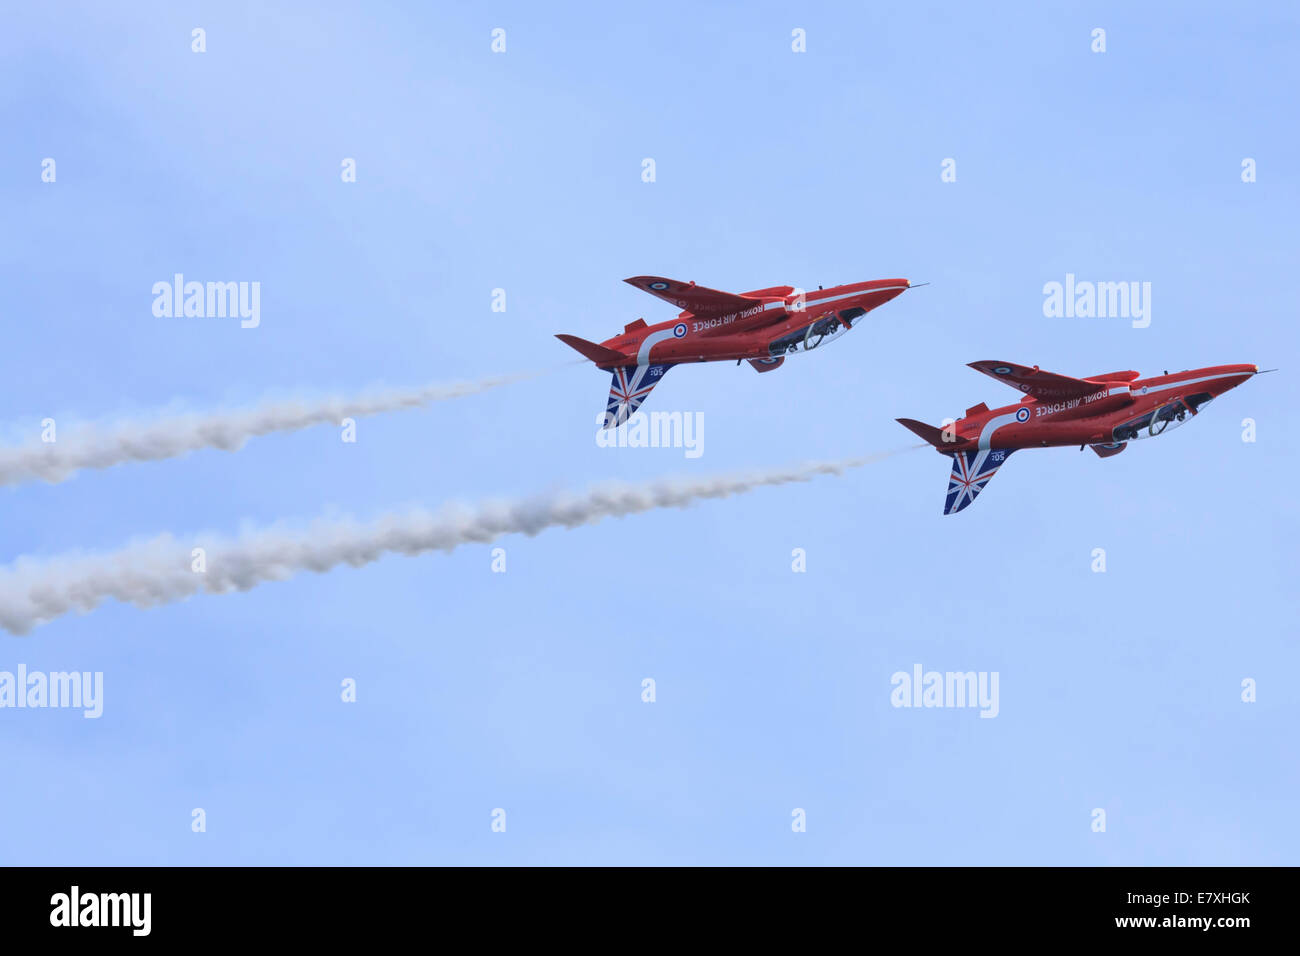 The Red Arrows at the 2014 Bournemouth Air Festival (UK) - Stock Image